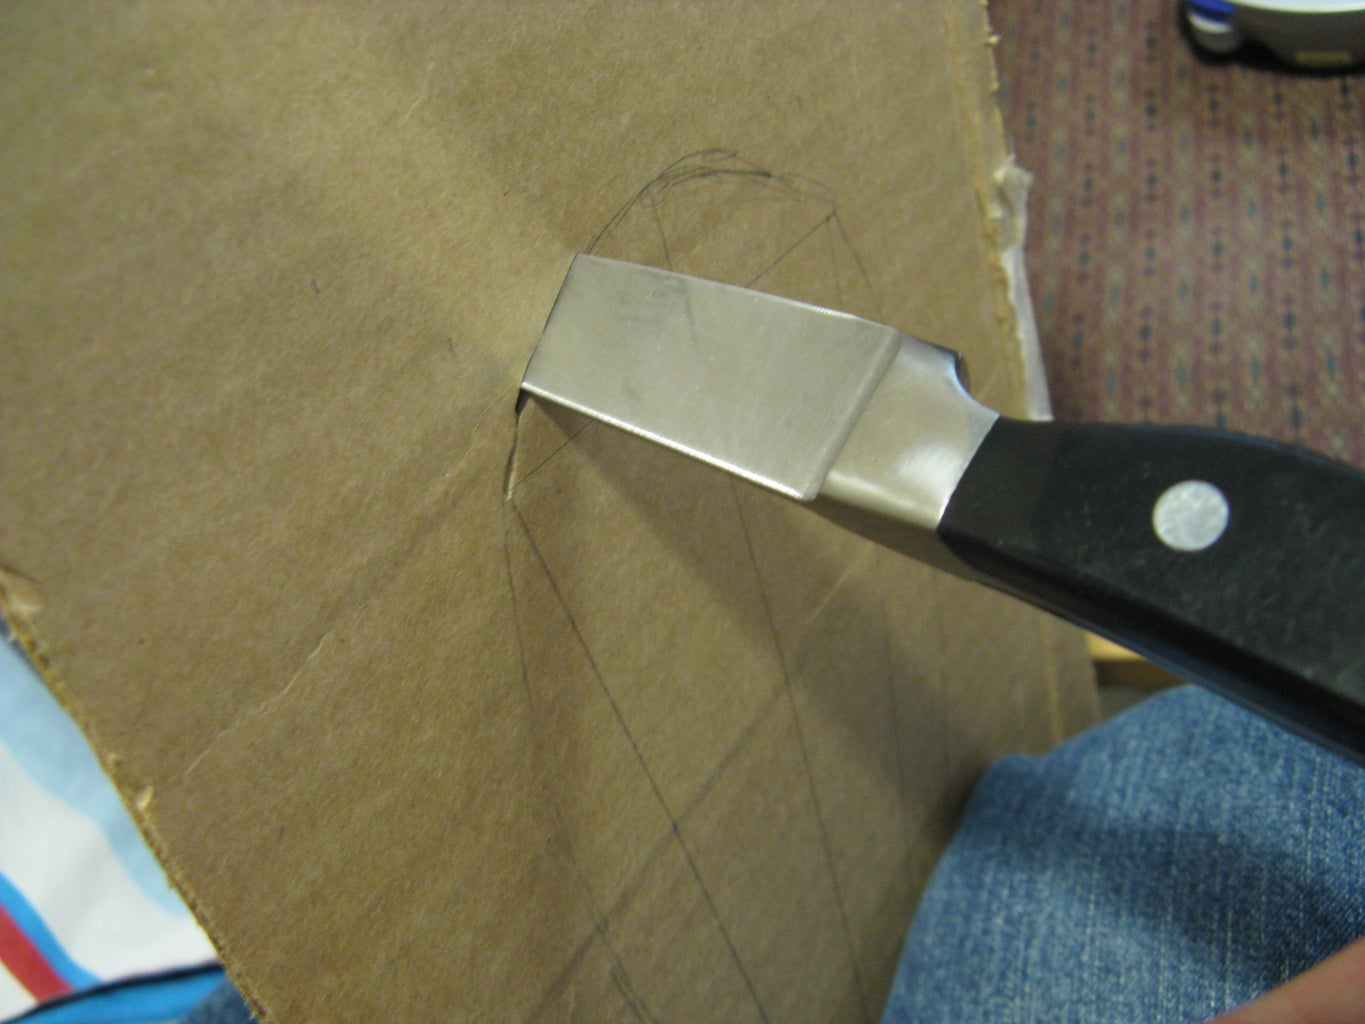 Plan and Cut the Coronal Slices